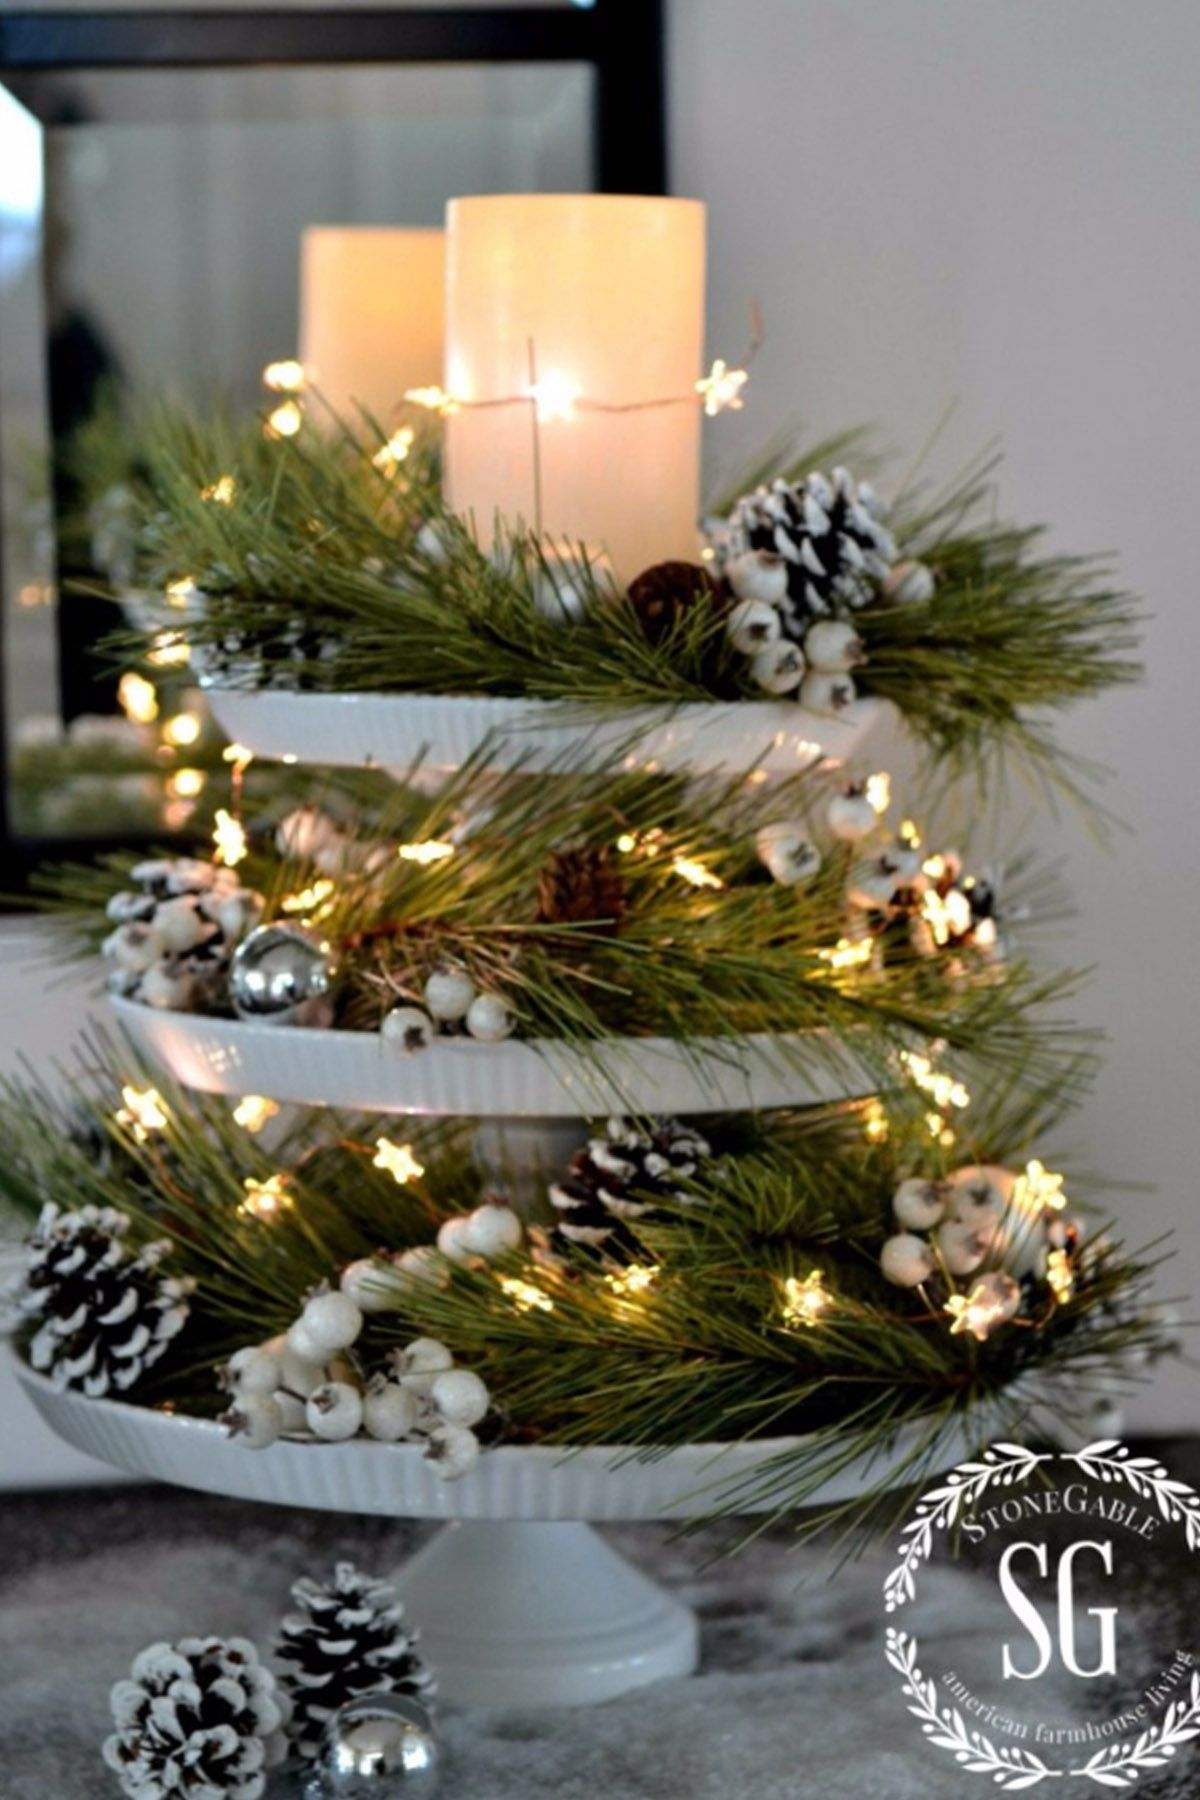 How To Decorate Christmas Table Centerpieces  Cake Stand Christmas Centerpiece